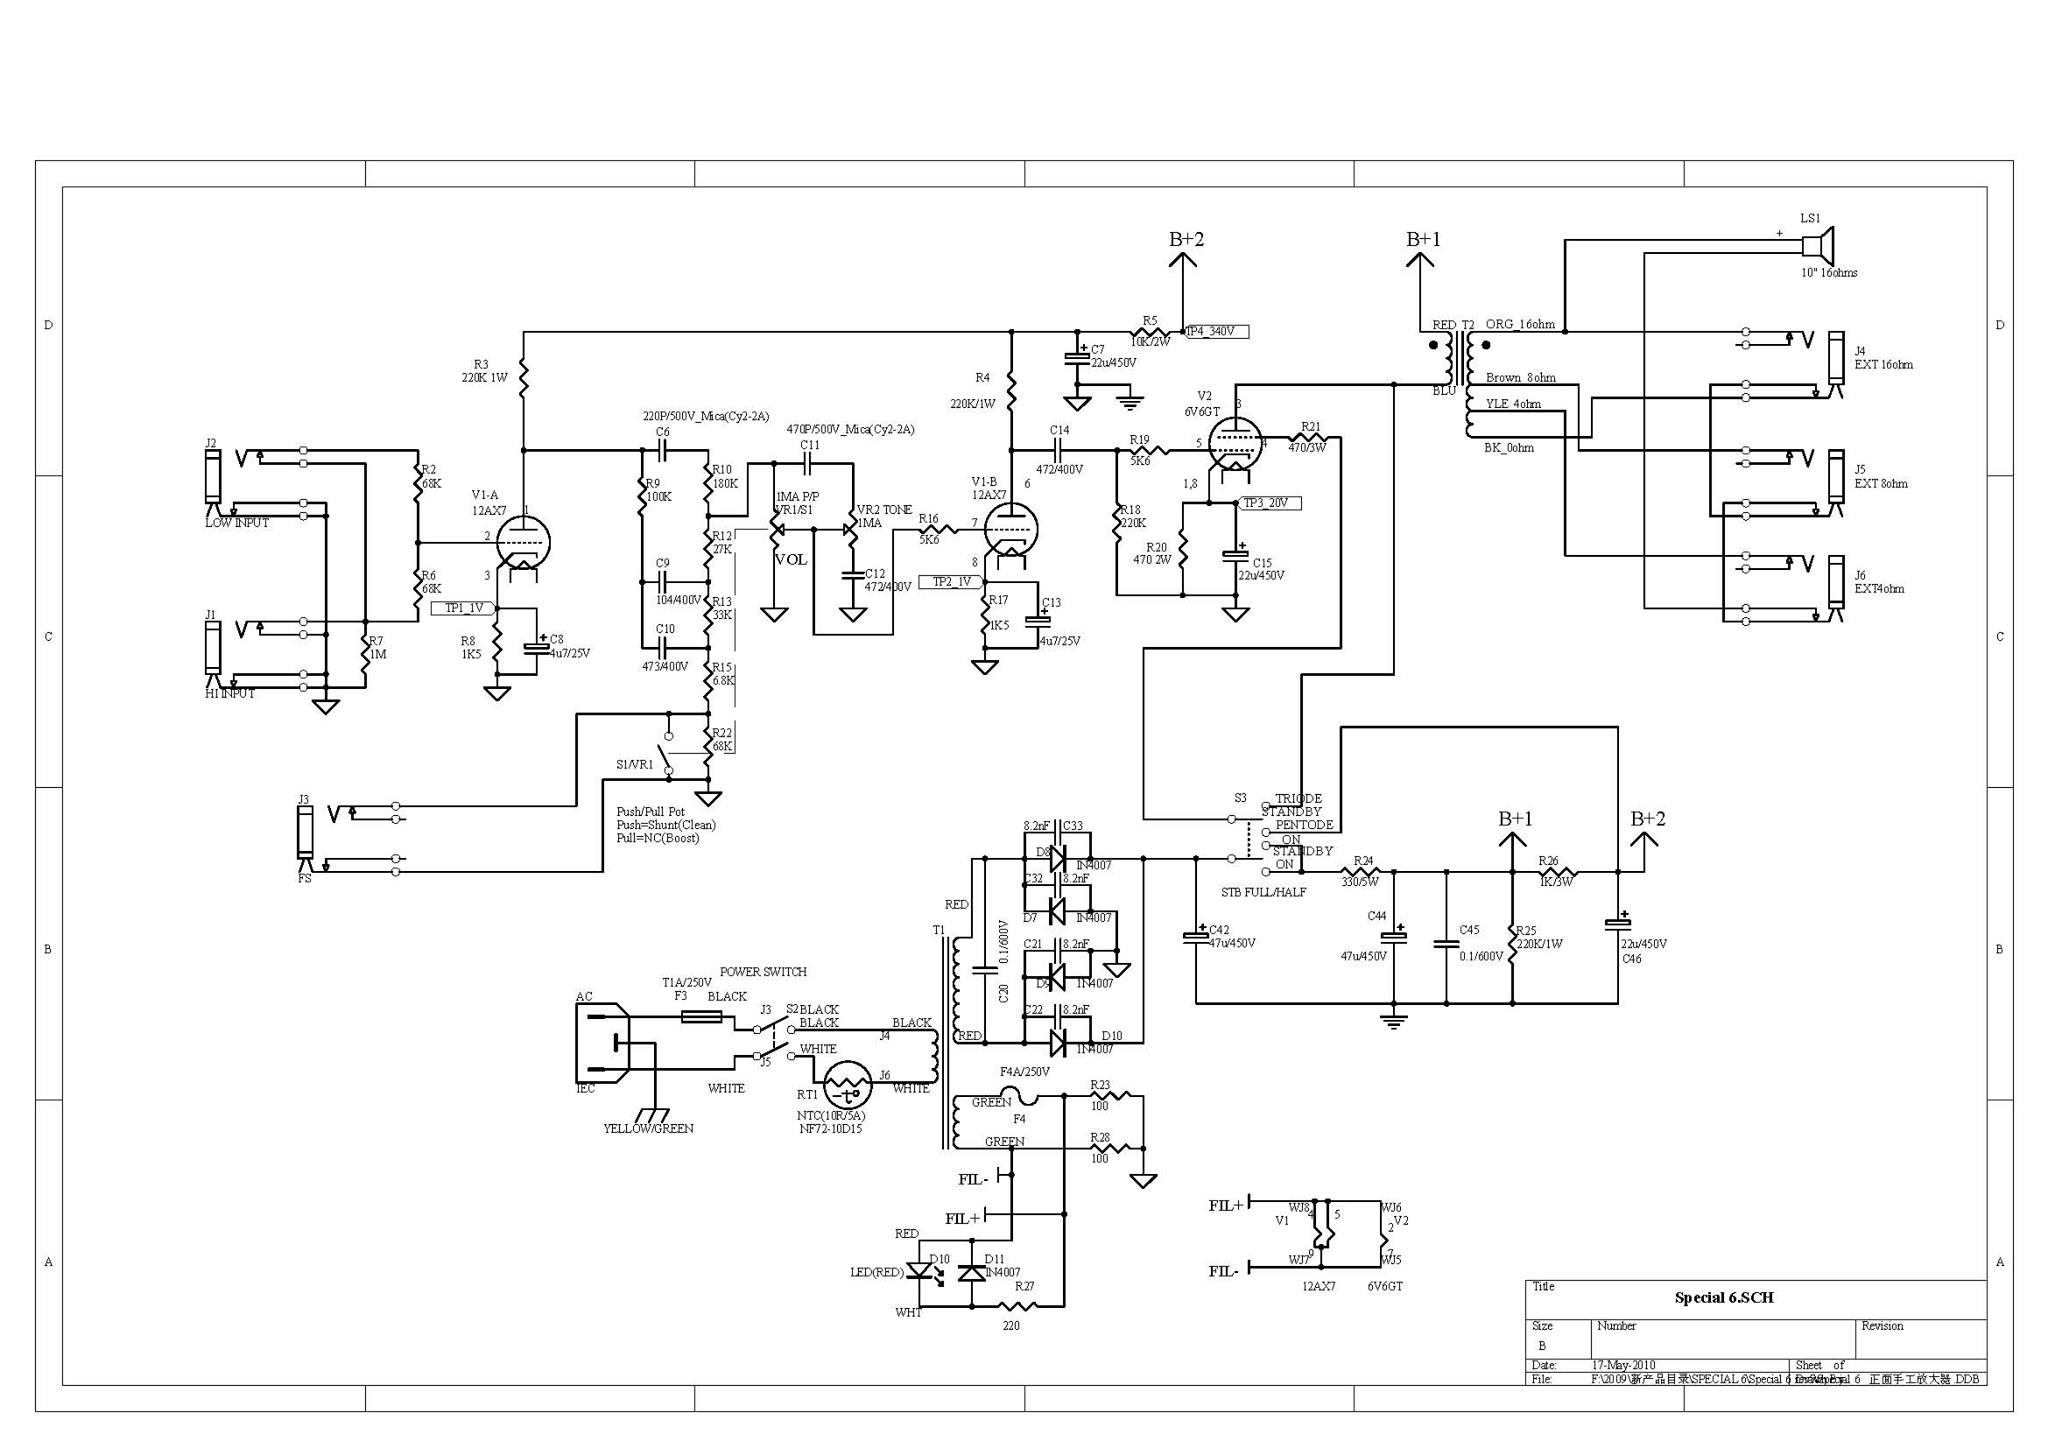 Special_6_Schematic vht mods Pots Telephone Wiring Diagram at soozxer.org